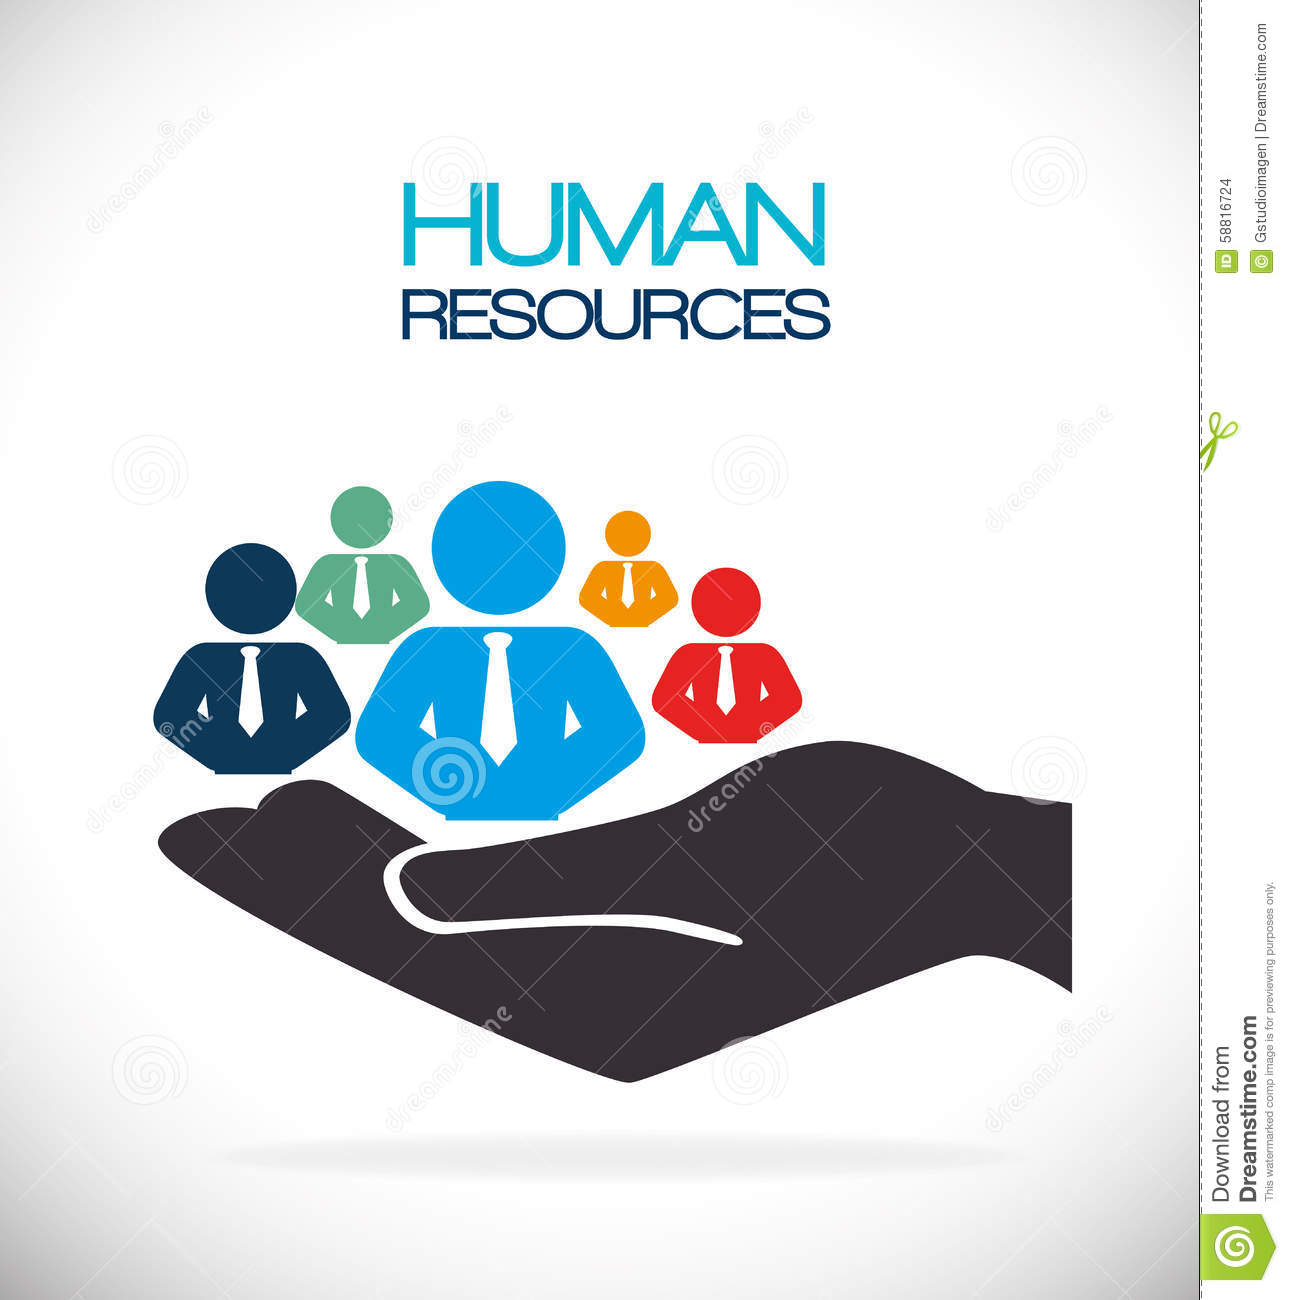 Human Resources Business Conceptual Royalty Free Stock Image